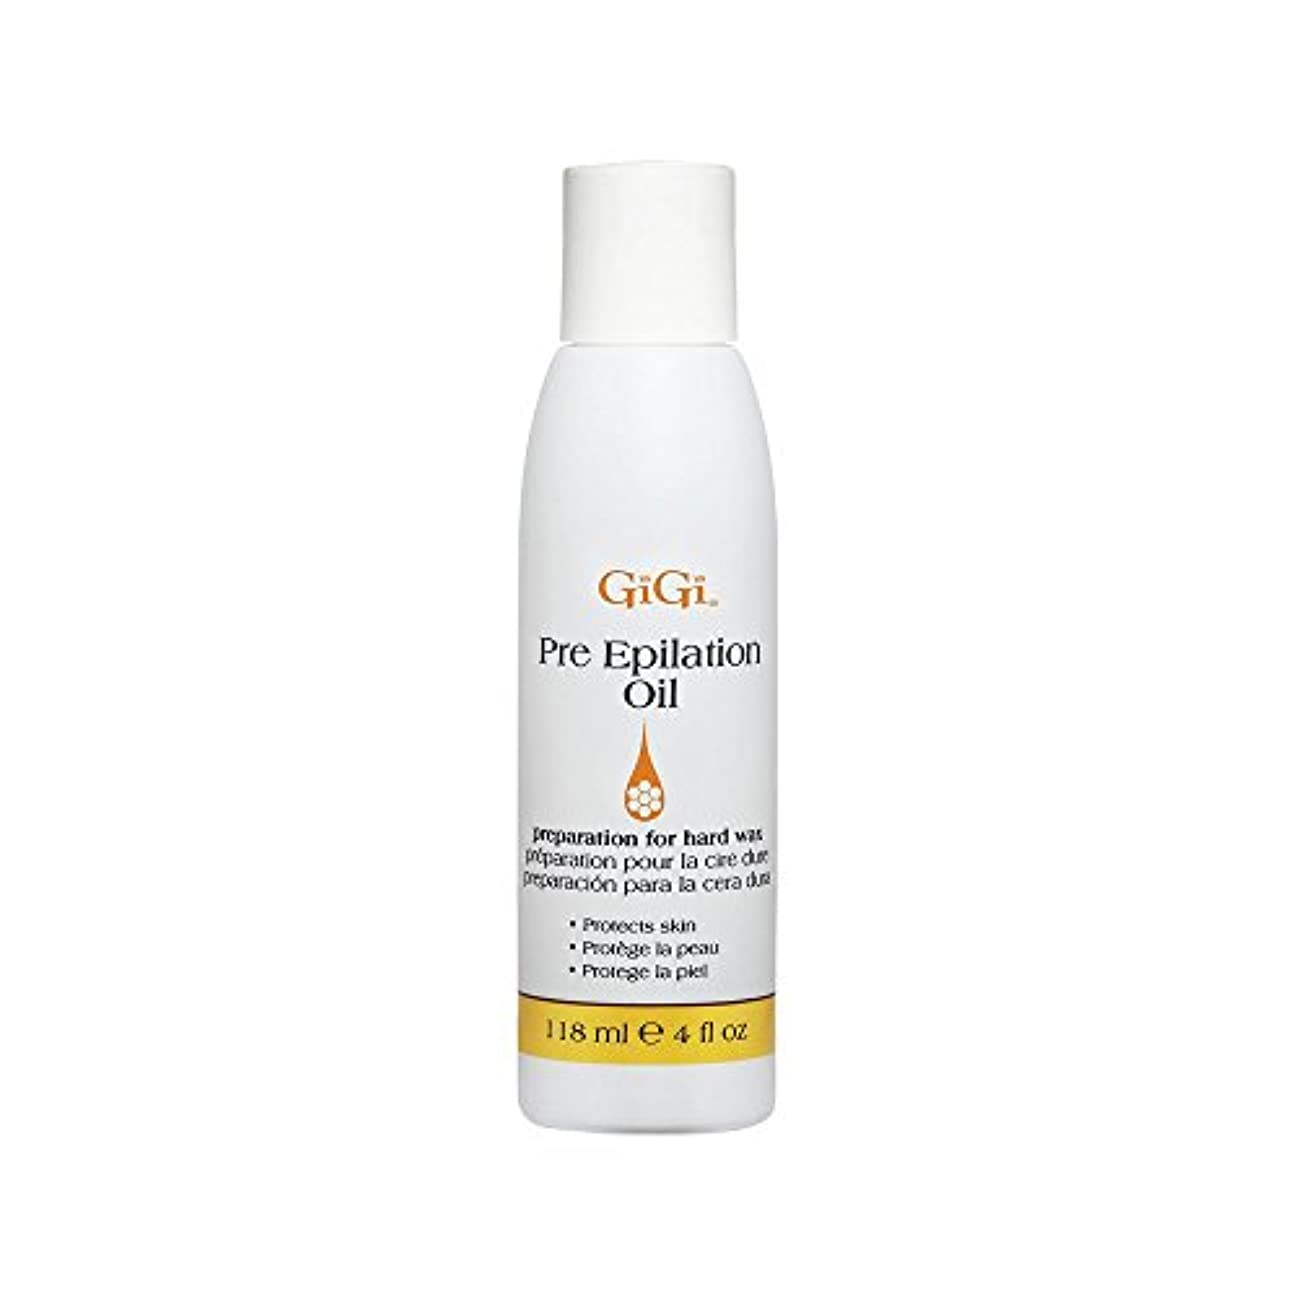 GiGi Pre Epilation Oil - Allows For Easier & More Effective Waxing While Protecting & Conditioning Skin - Preparation...